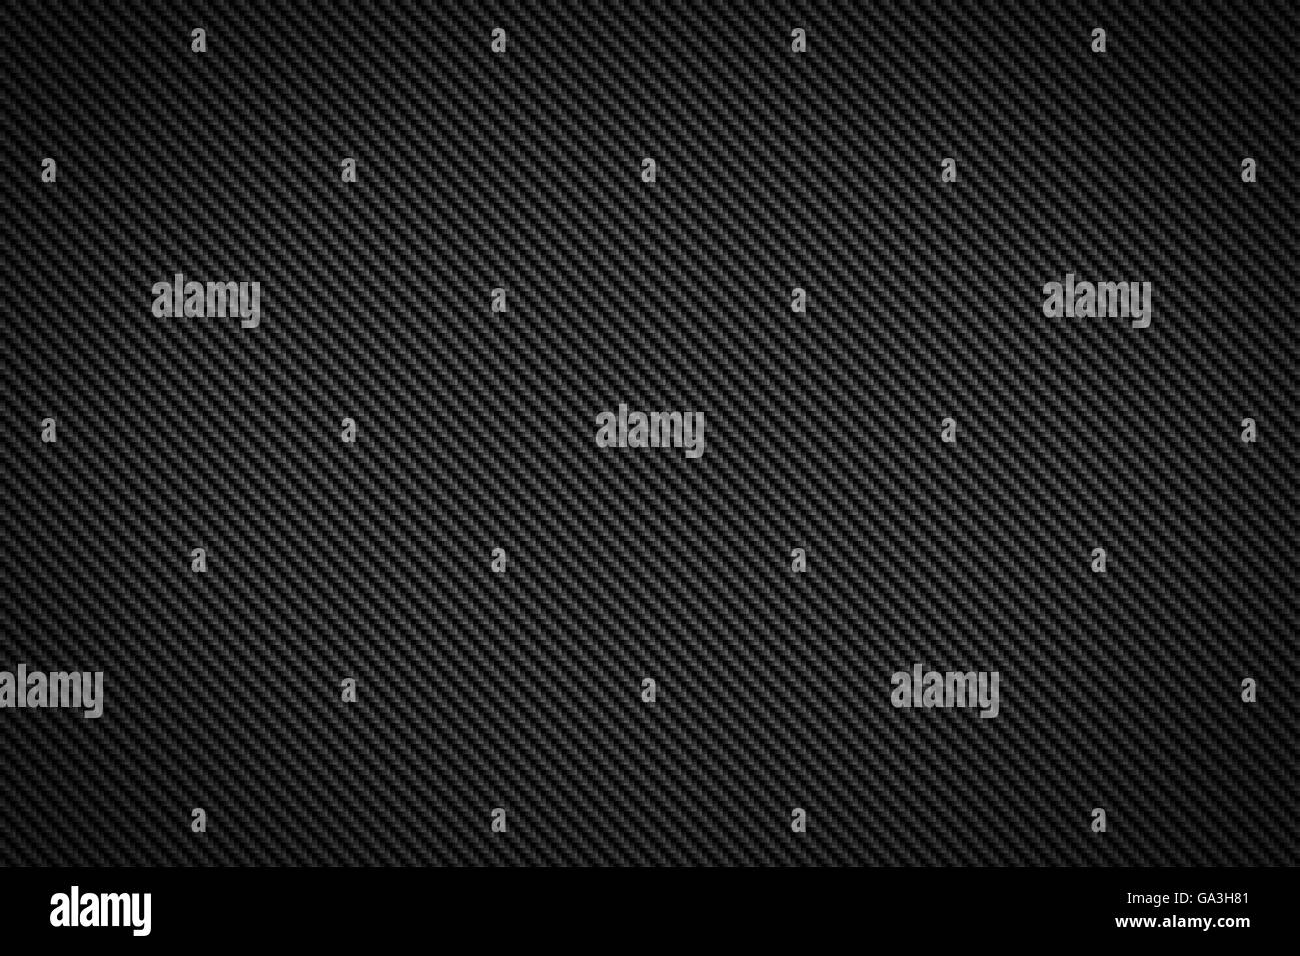 Fibre de carbone texture background Photo Stock